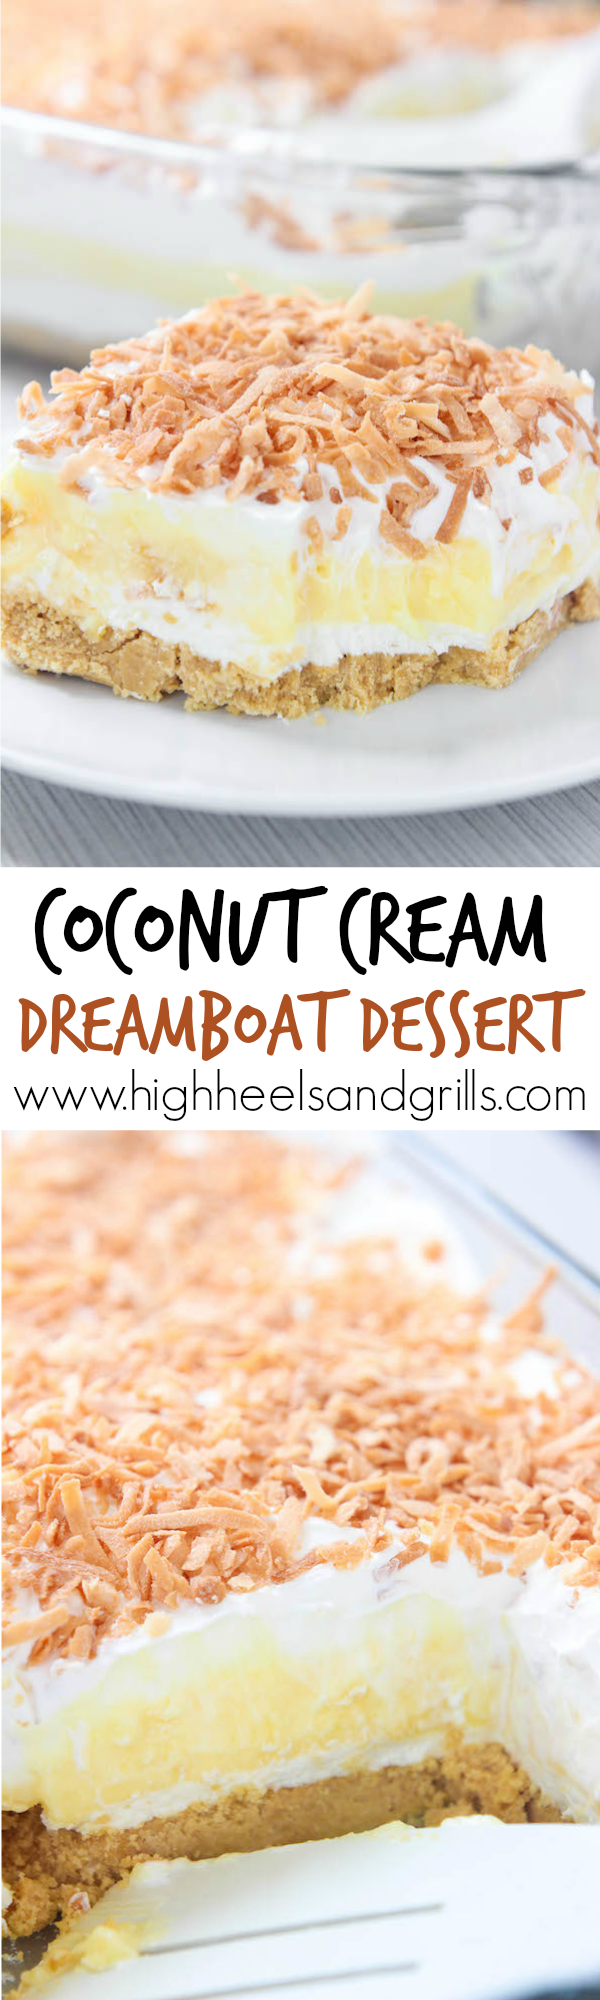 Coconut Cream Dreamboat Dessert Collage